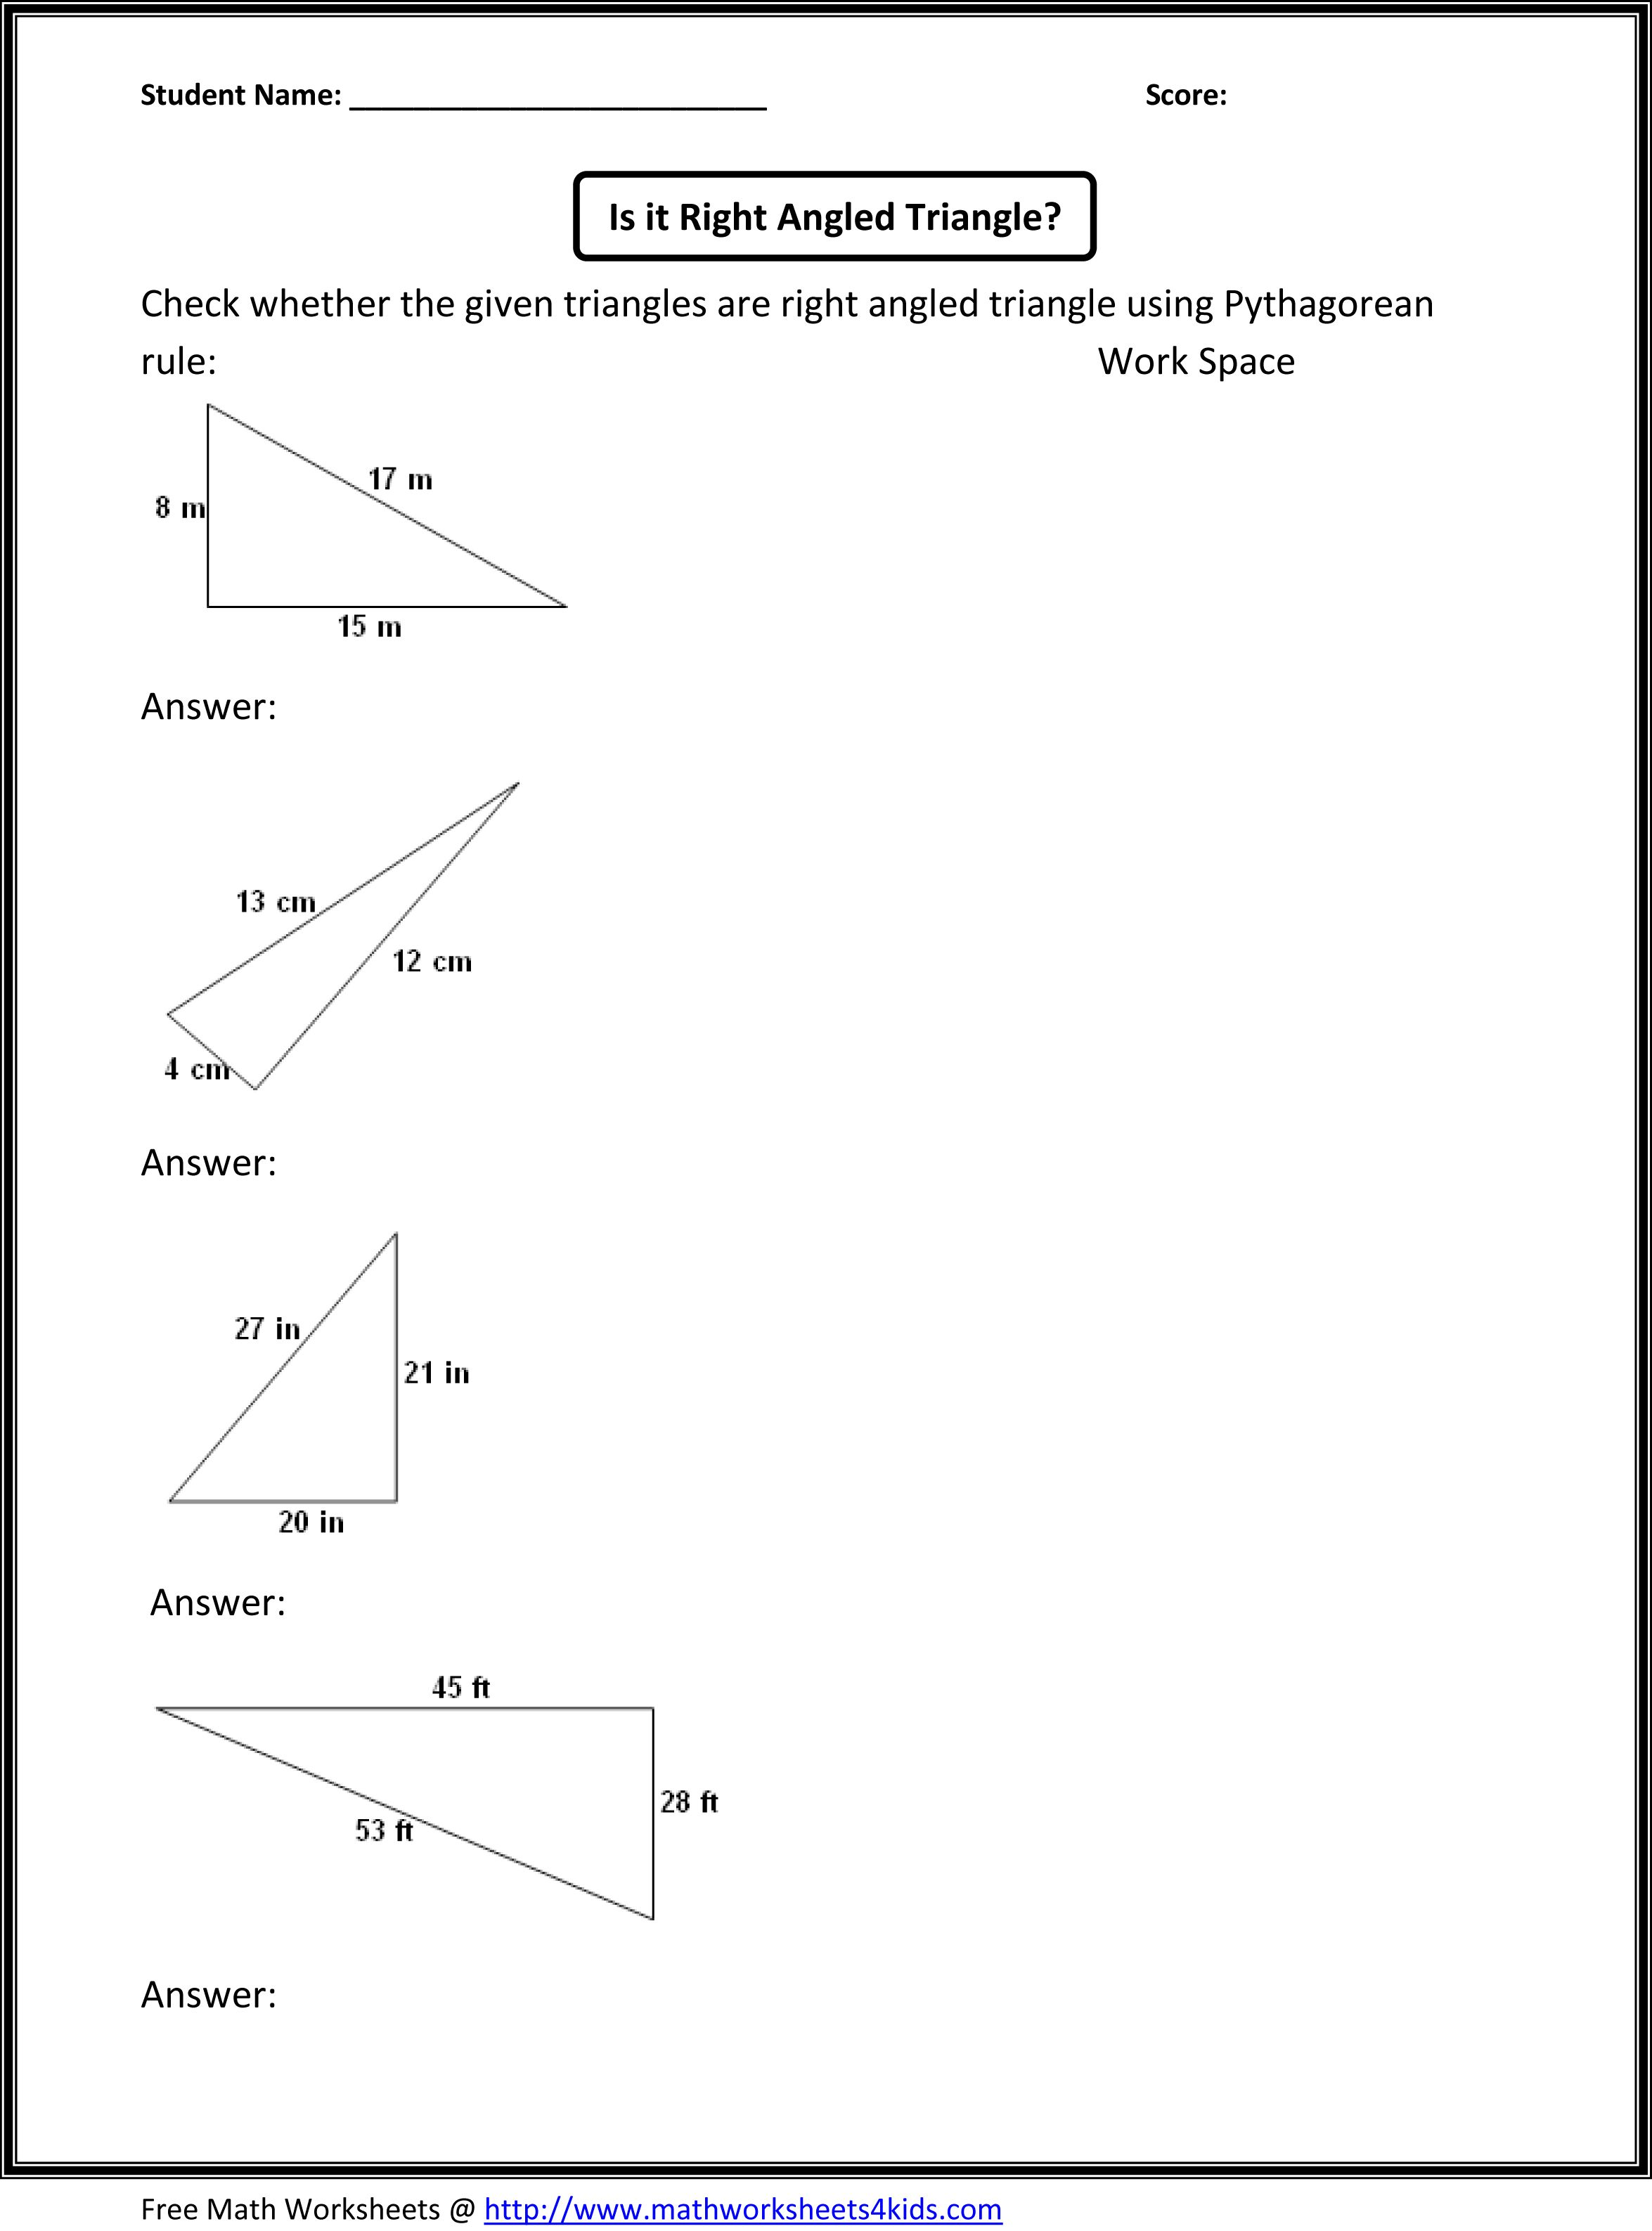 pythagorean theorem worksheet pythagorean theorem activities pinterest worksheets math. Black Bedroom Furniture Sets. Home Design Ideas